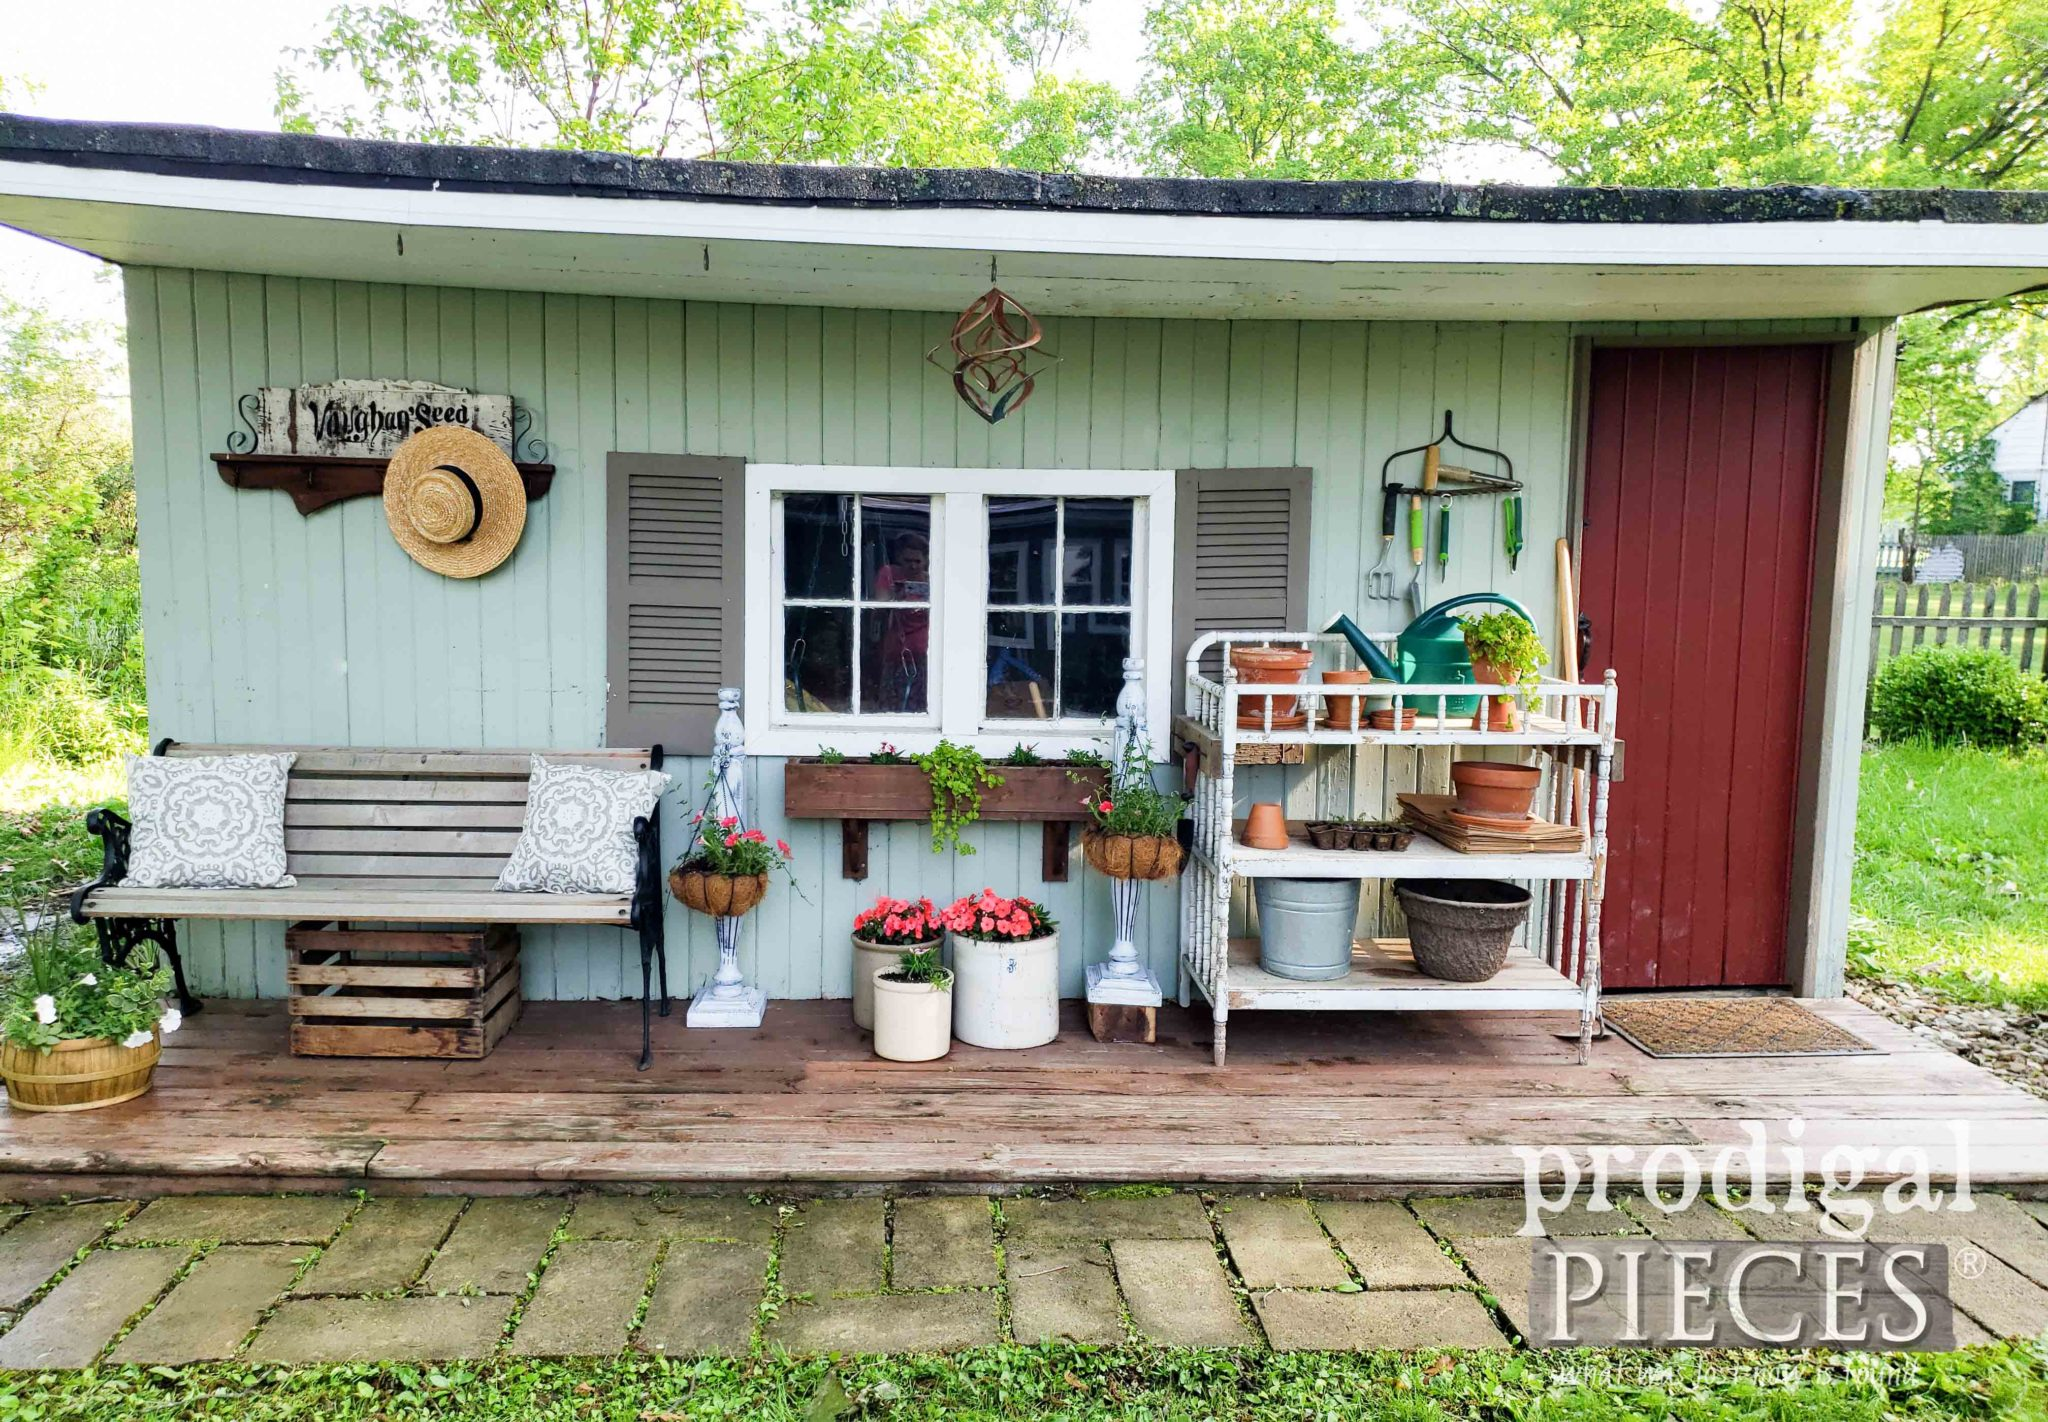 Spring Garden Shed with Upcycled DIY Decor by Larissa of Prodigal Pieces | prodigalpieces.com #prodigalpieces #diy #home #garden #homedecor